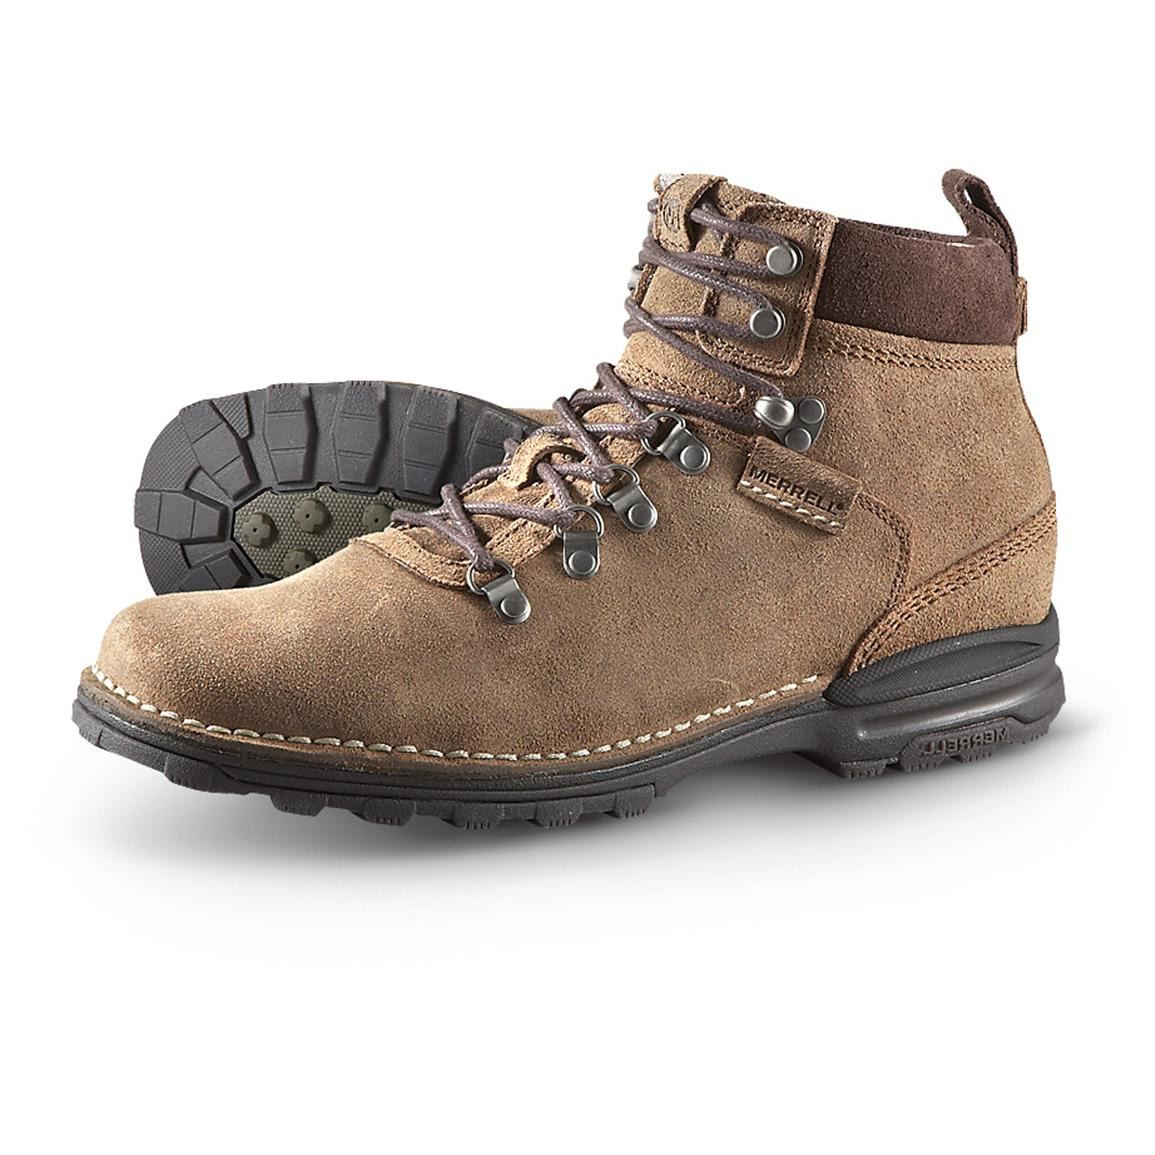 Mens Outdoor Boots G5Iy5vVt